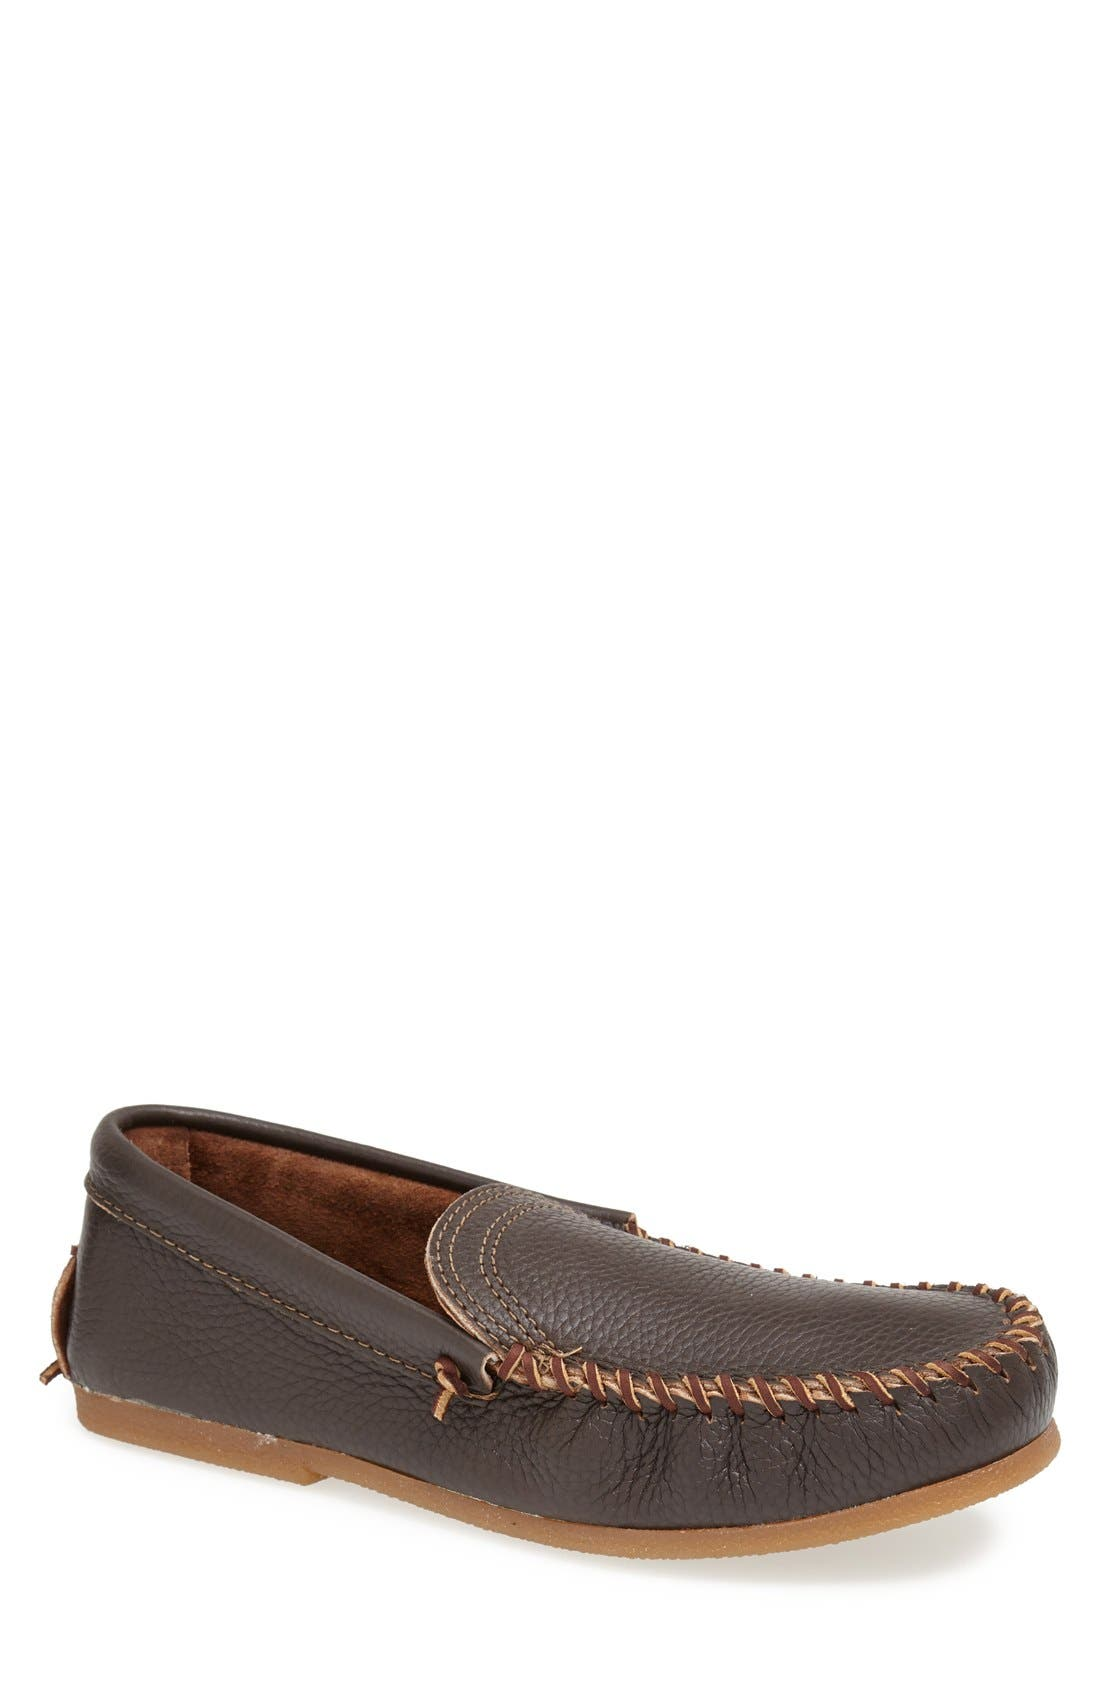 Venetian Loafer,                             Main thumbnail 1, color,                             Dark Brown